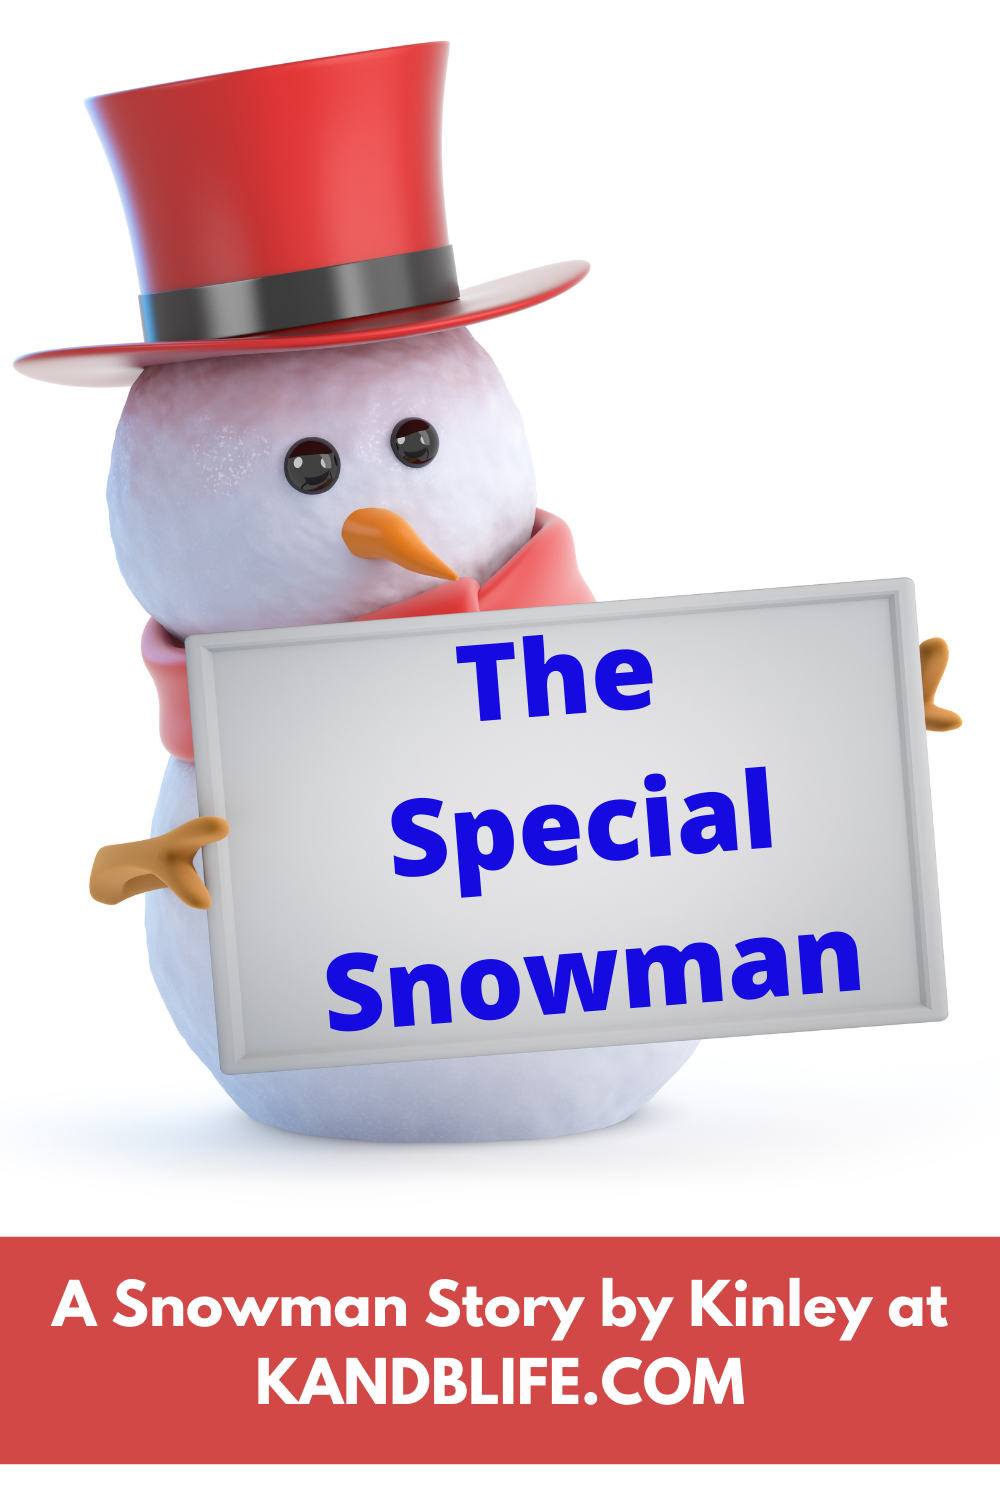 A snowman holding a sign that says, The Special Snowman, for the snowman story.